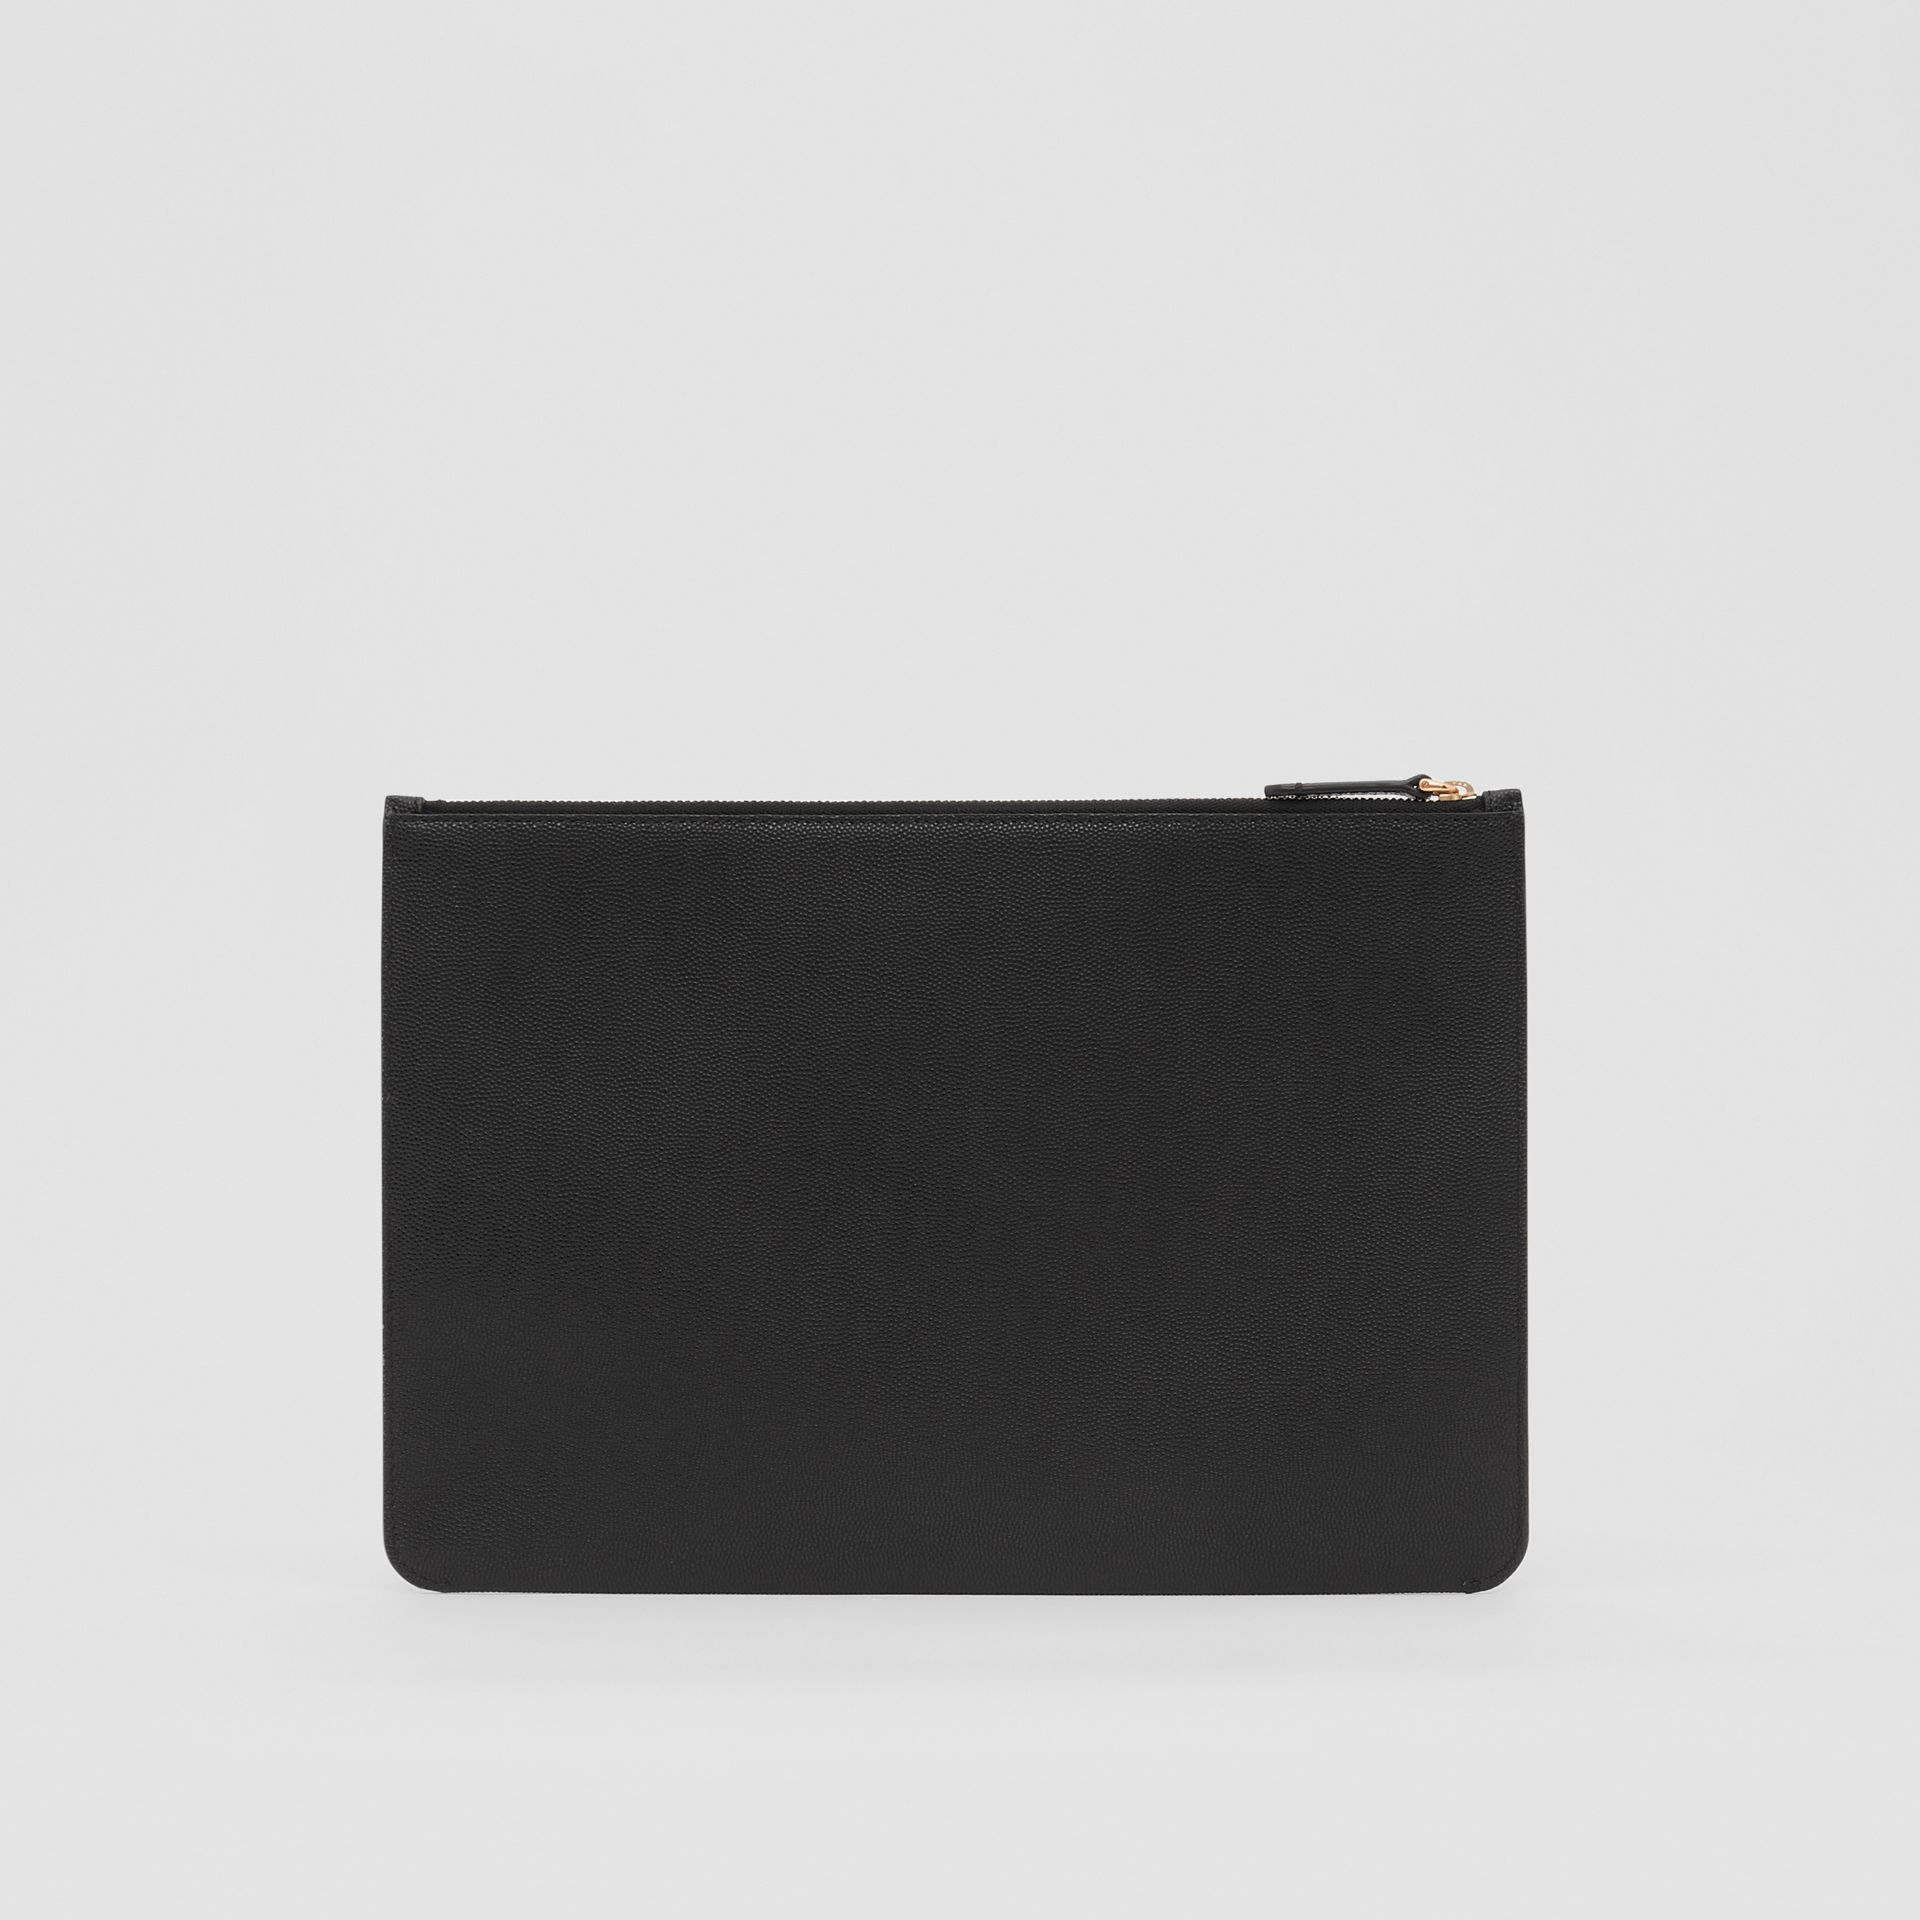 Monogram Motif Grainy Leather Pouch in Black - Women | Burberry United States - gallery image 6